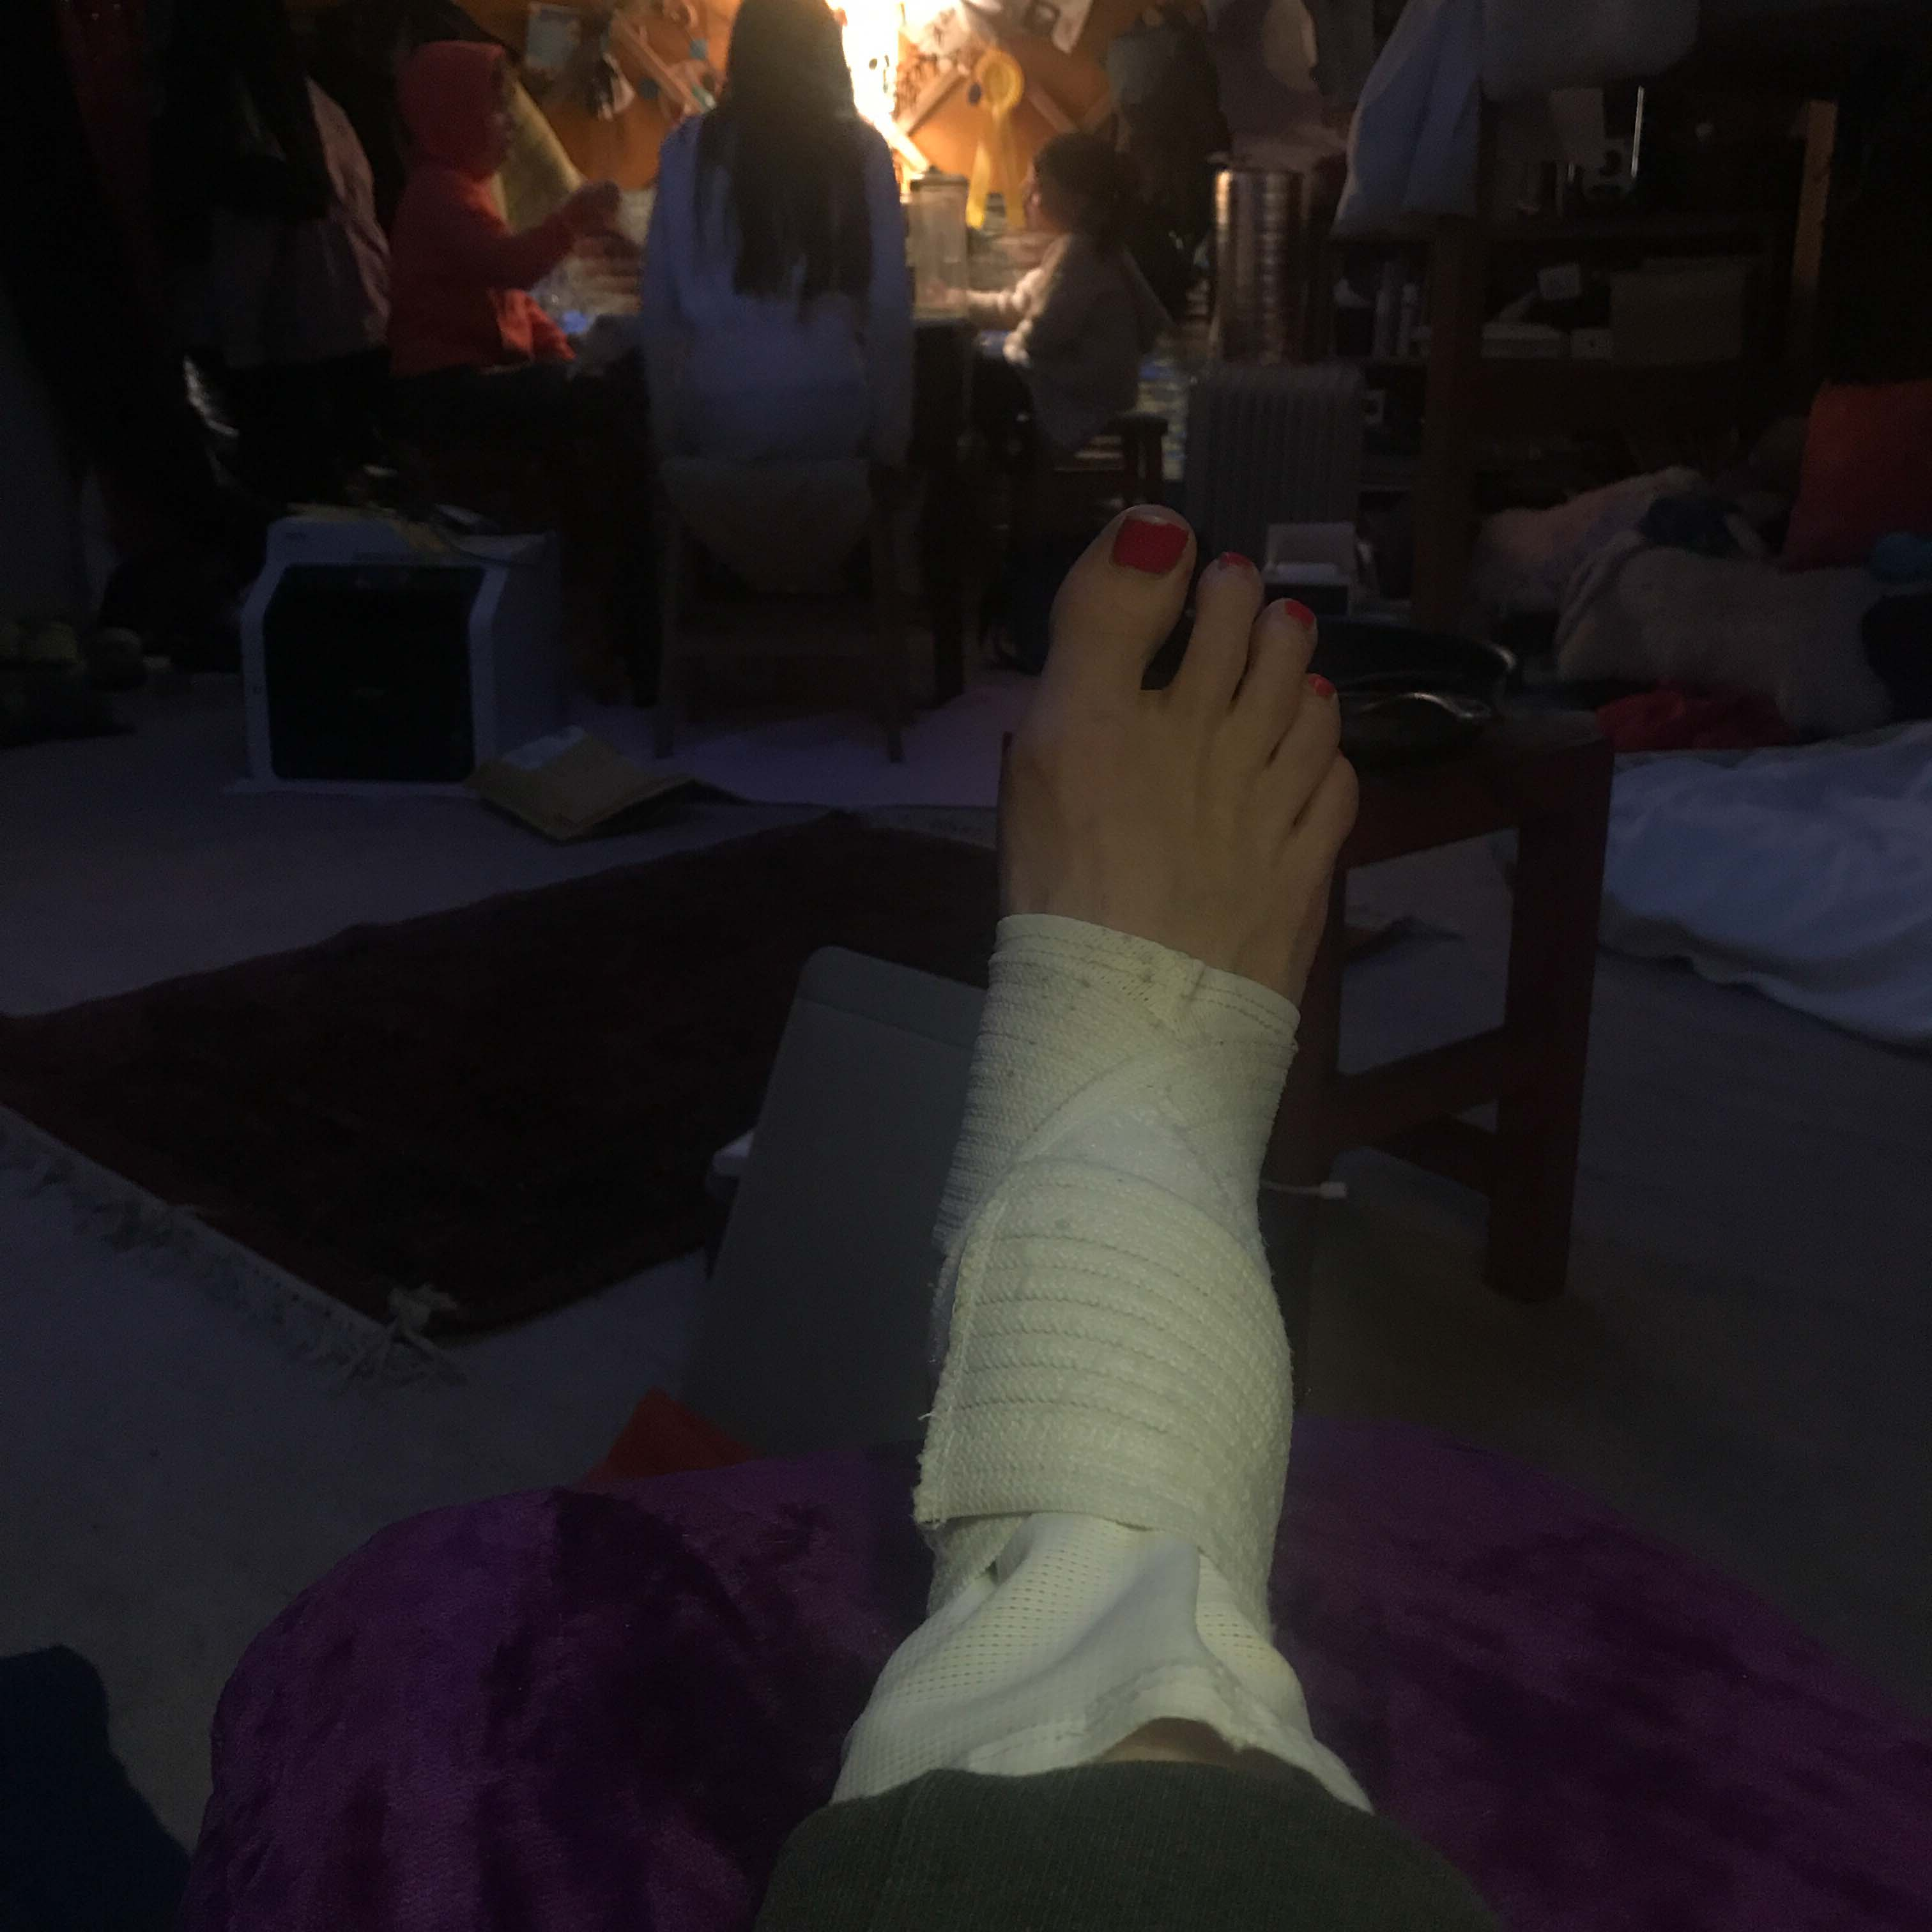 buggered ankle